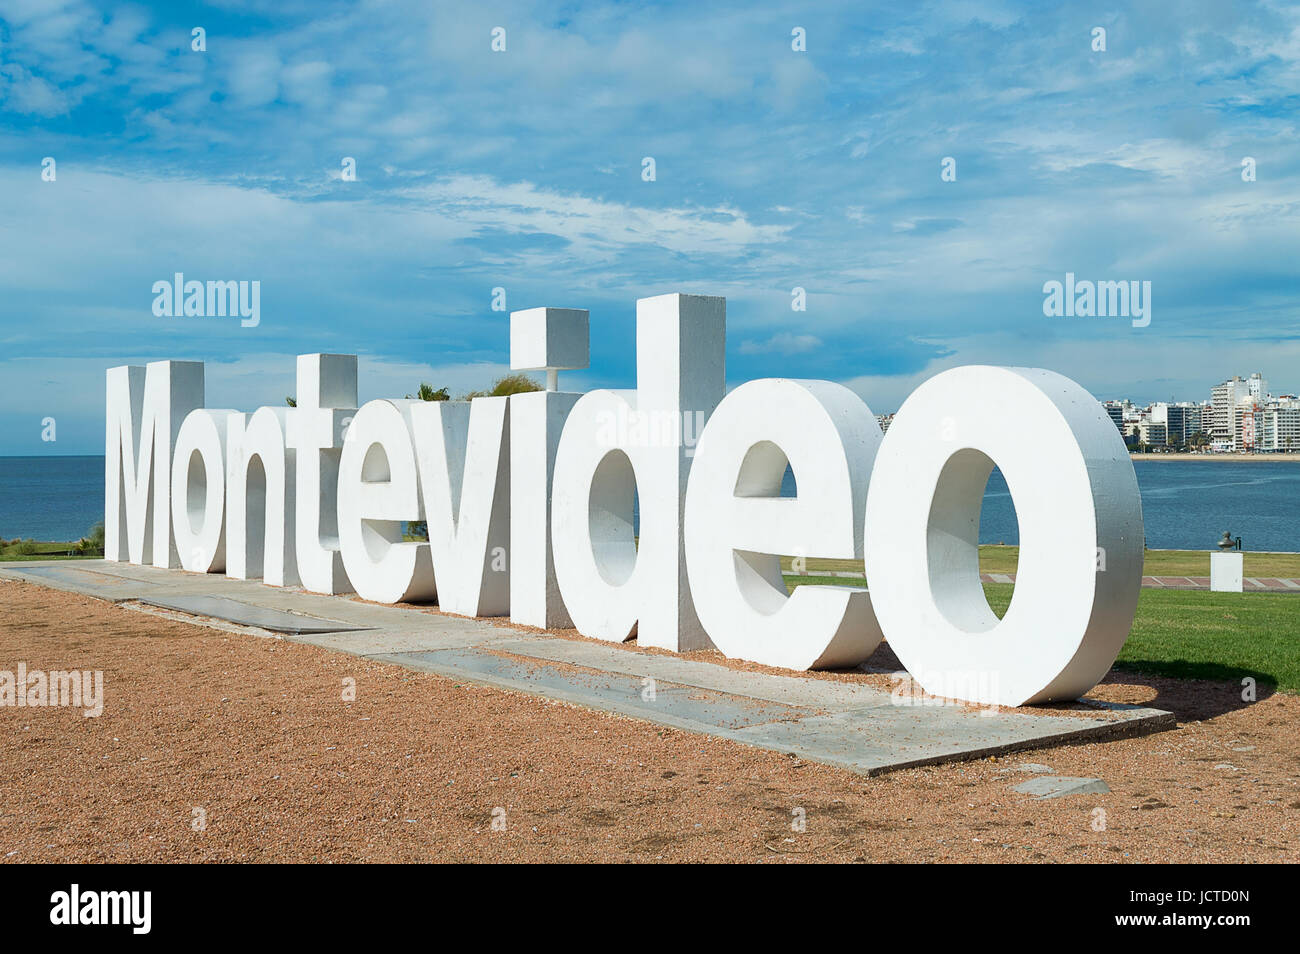 MONTEVIDEO, URUGUAY - FEBRUARY 1, 2017: Restoration of Montevideo sign. Stock Photo